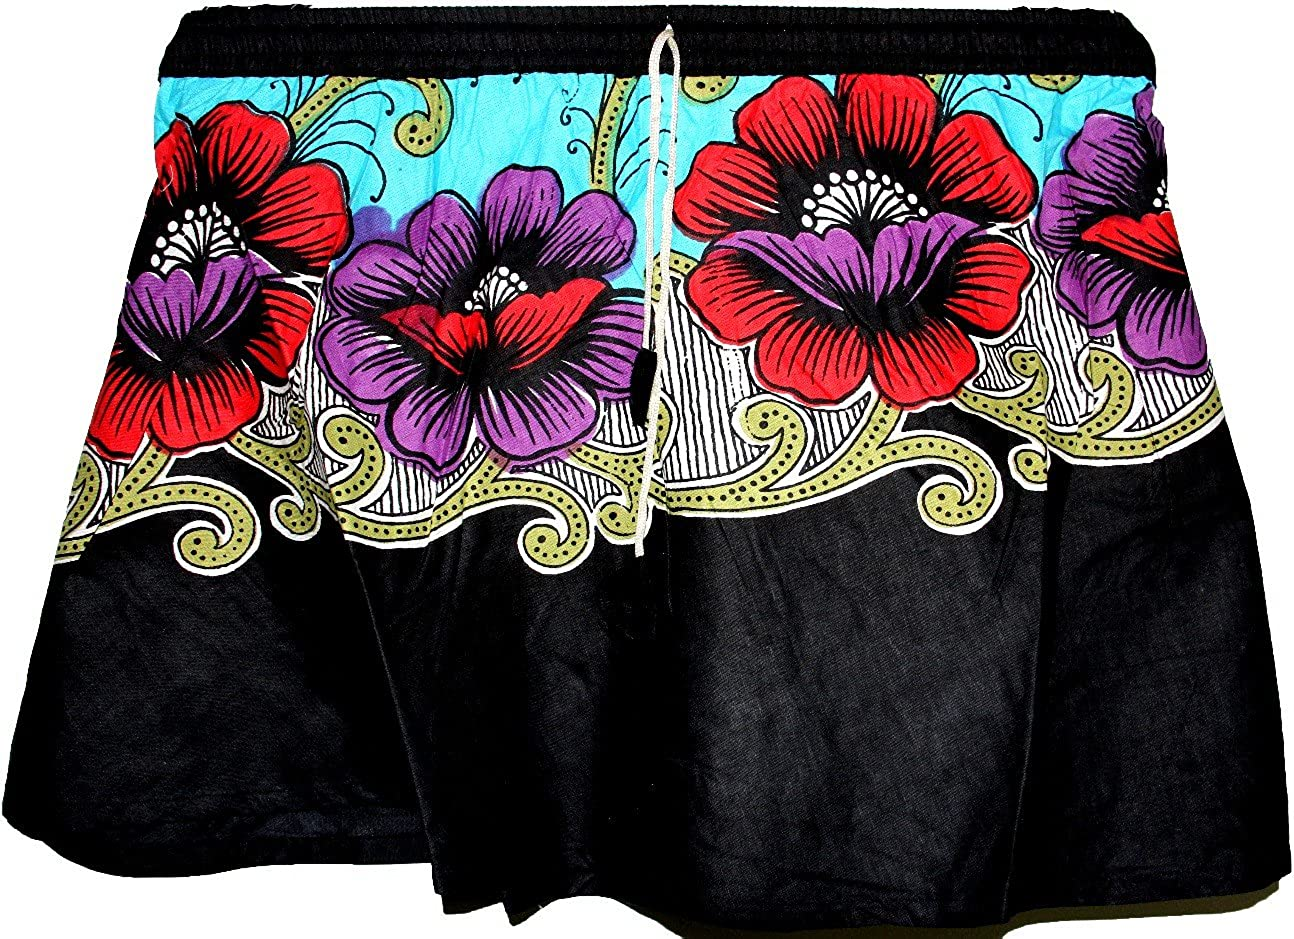 Highwaypay Indian Stylish Baby Skirt Casual Wear Cotton Floral Printed Short Mini Summer Skirt 2955